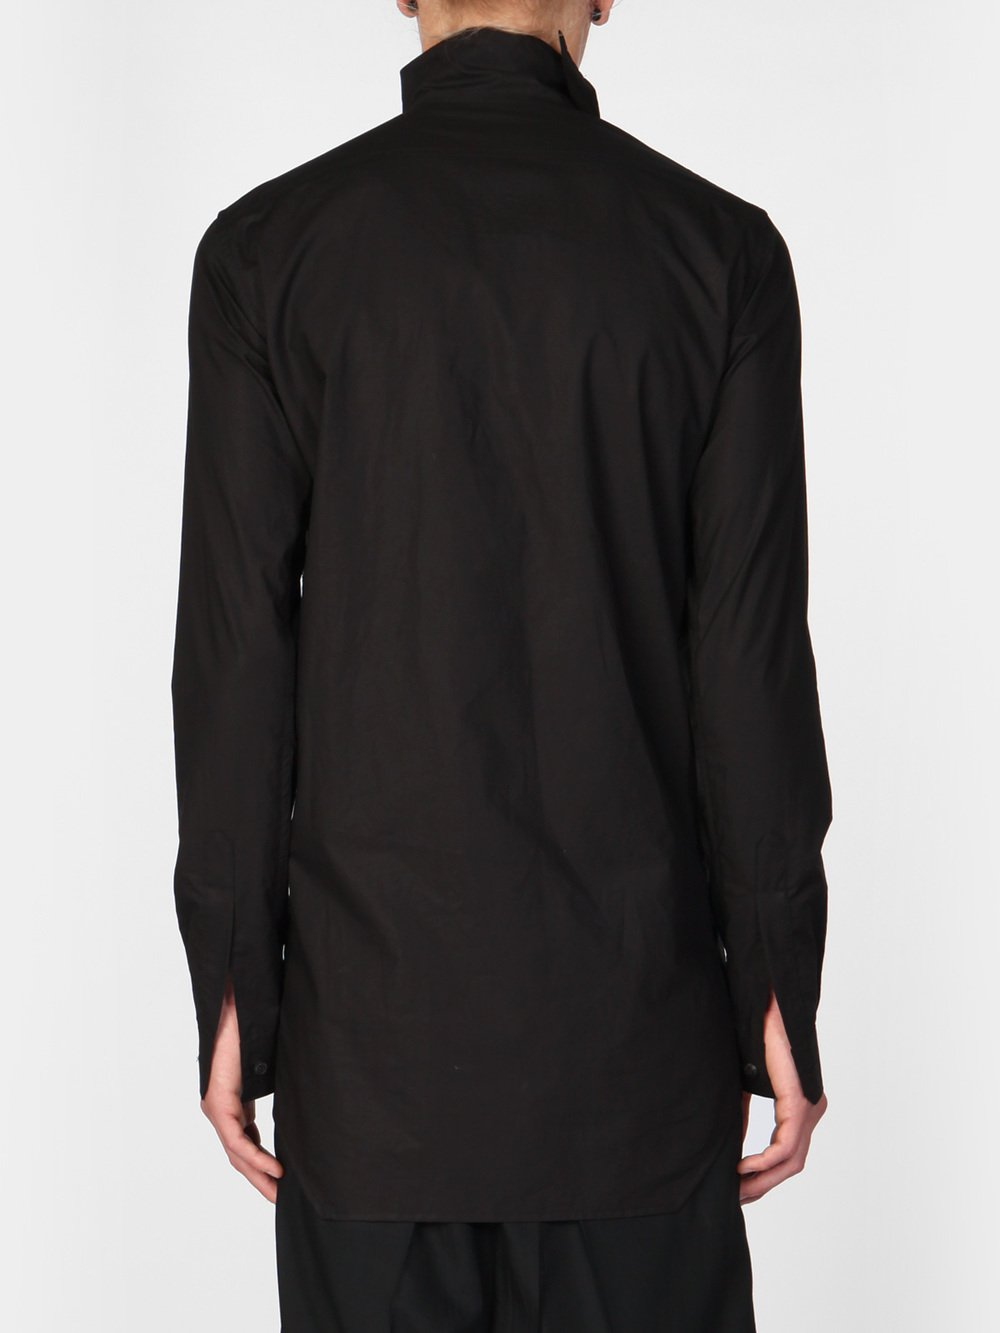 RICK OWENS - NEW ISLAND SHIRT